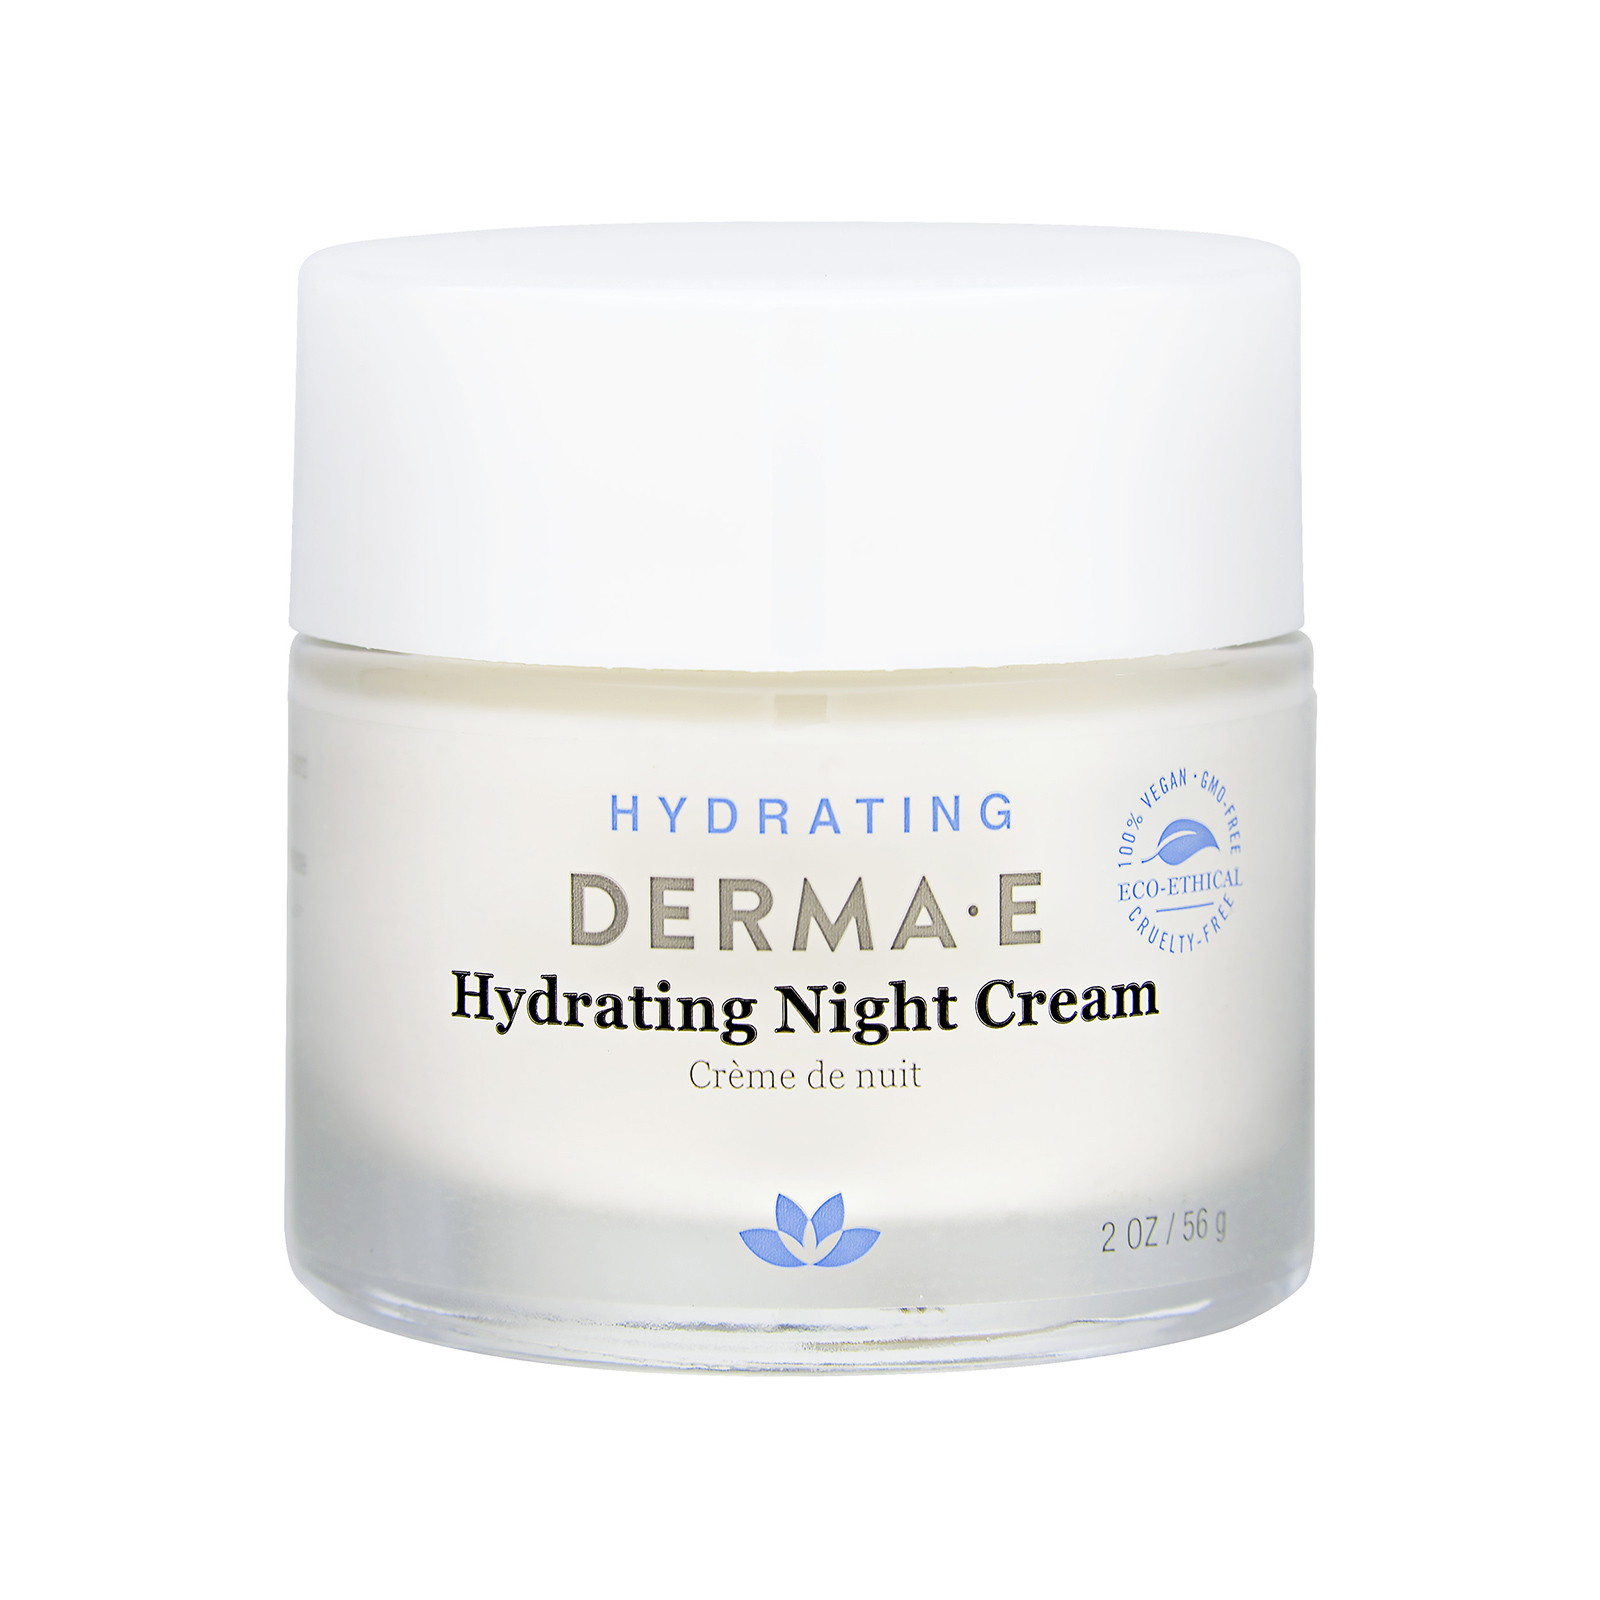 Derma e Hydrating Night Crème With Hyaluronic Acid (For Dry and Normal Skin) 2oz, 56g